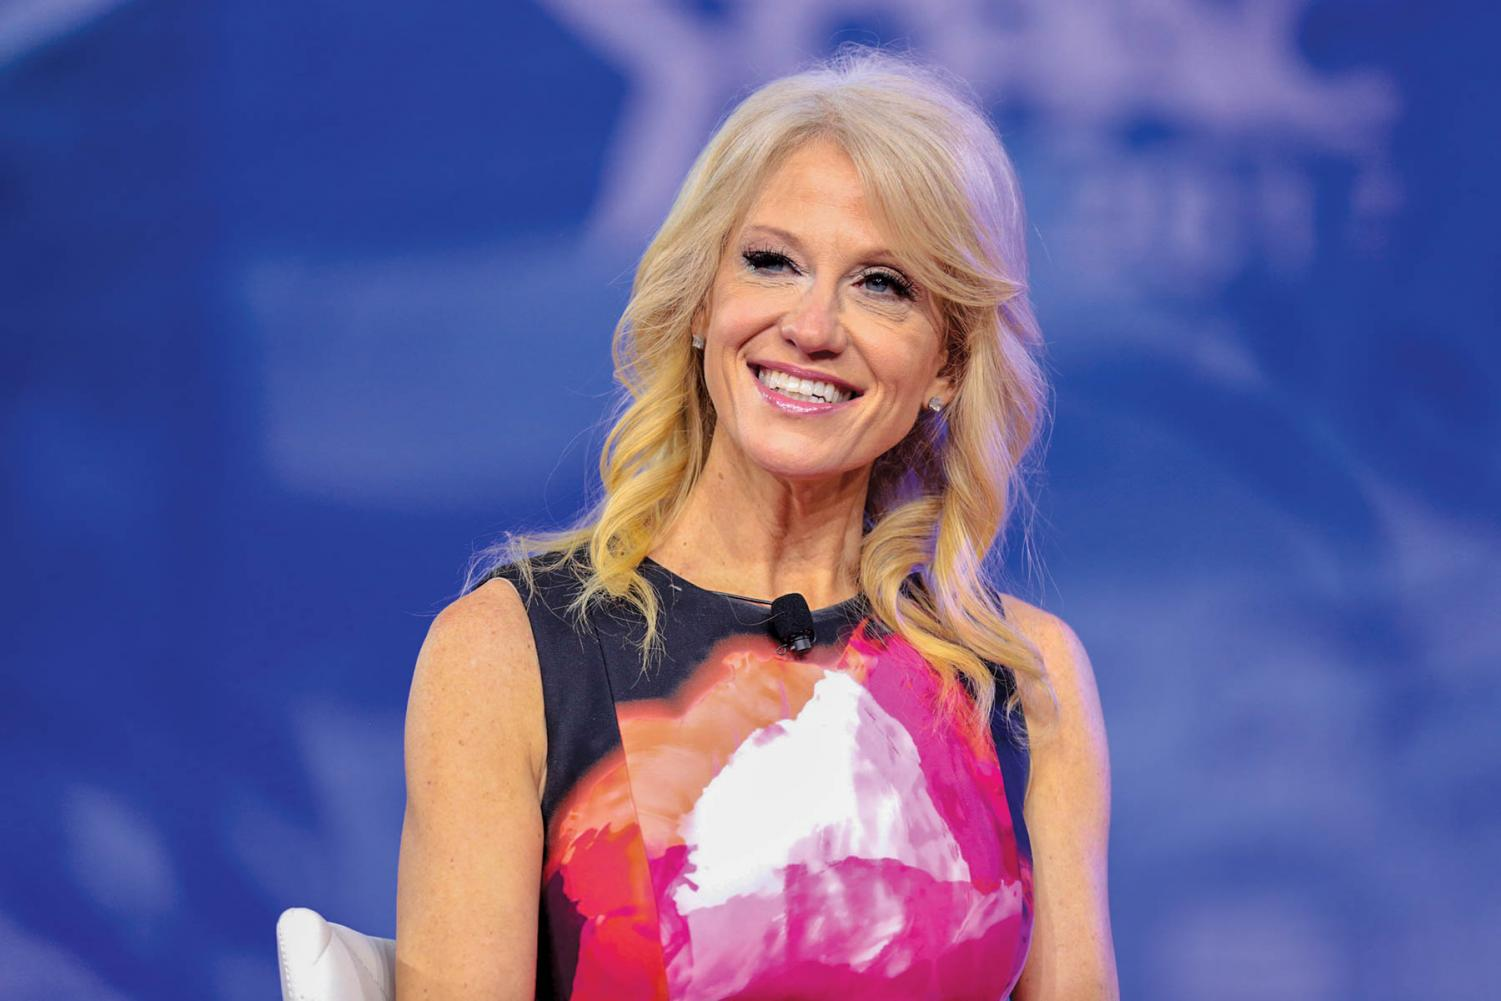 Conway serves as the current counselor to the President